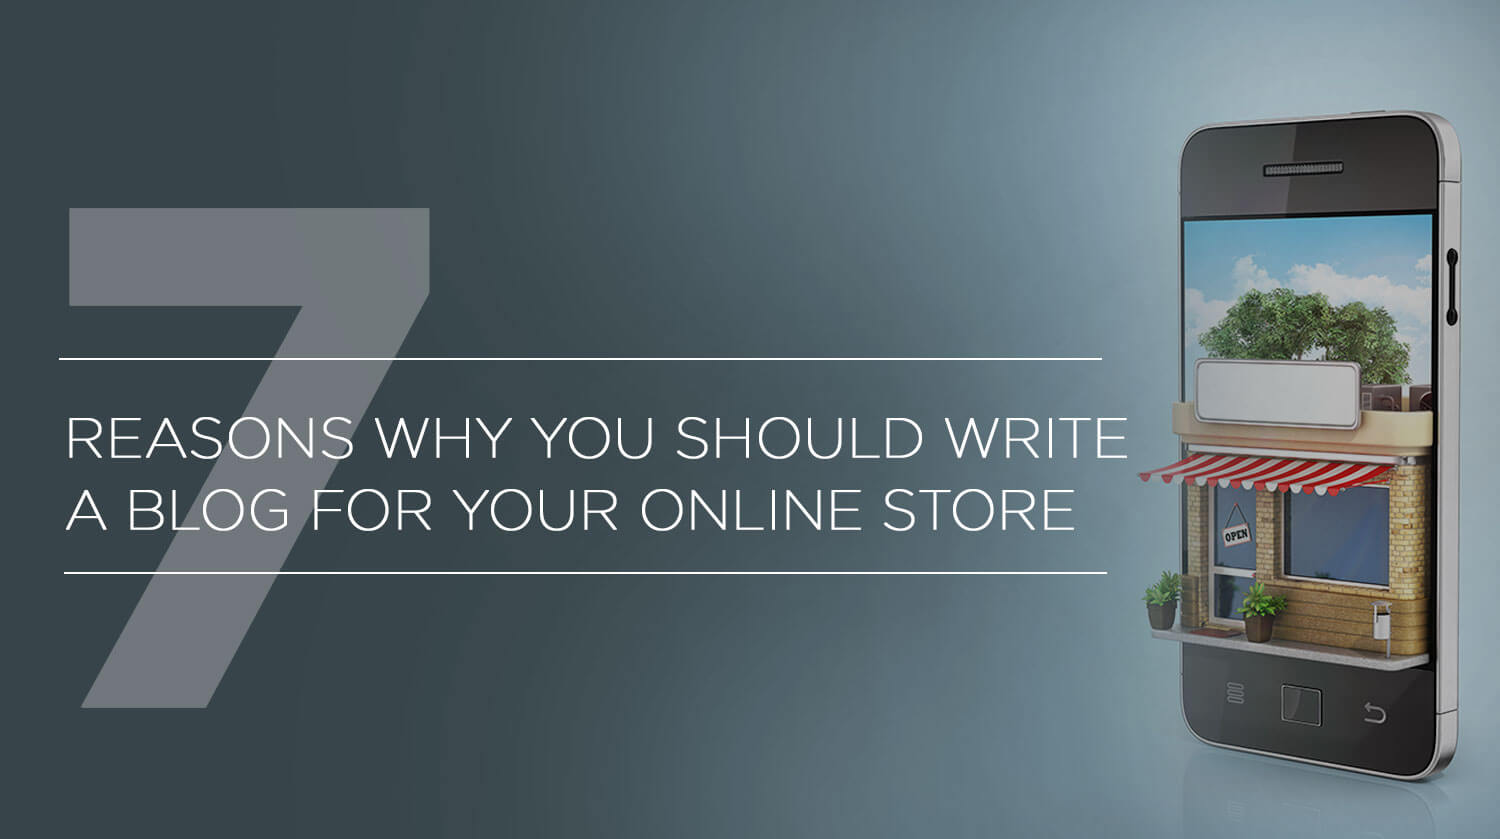 7 Reasons Why You Should Write a Blog for Your Online Store